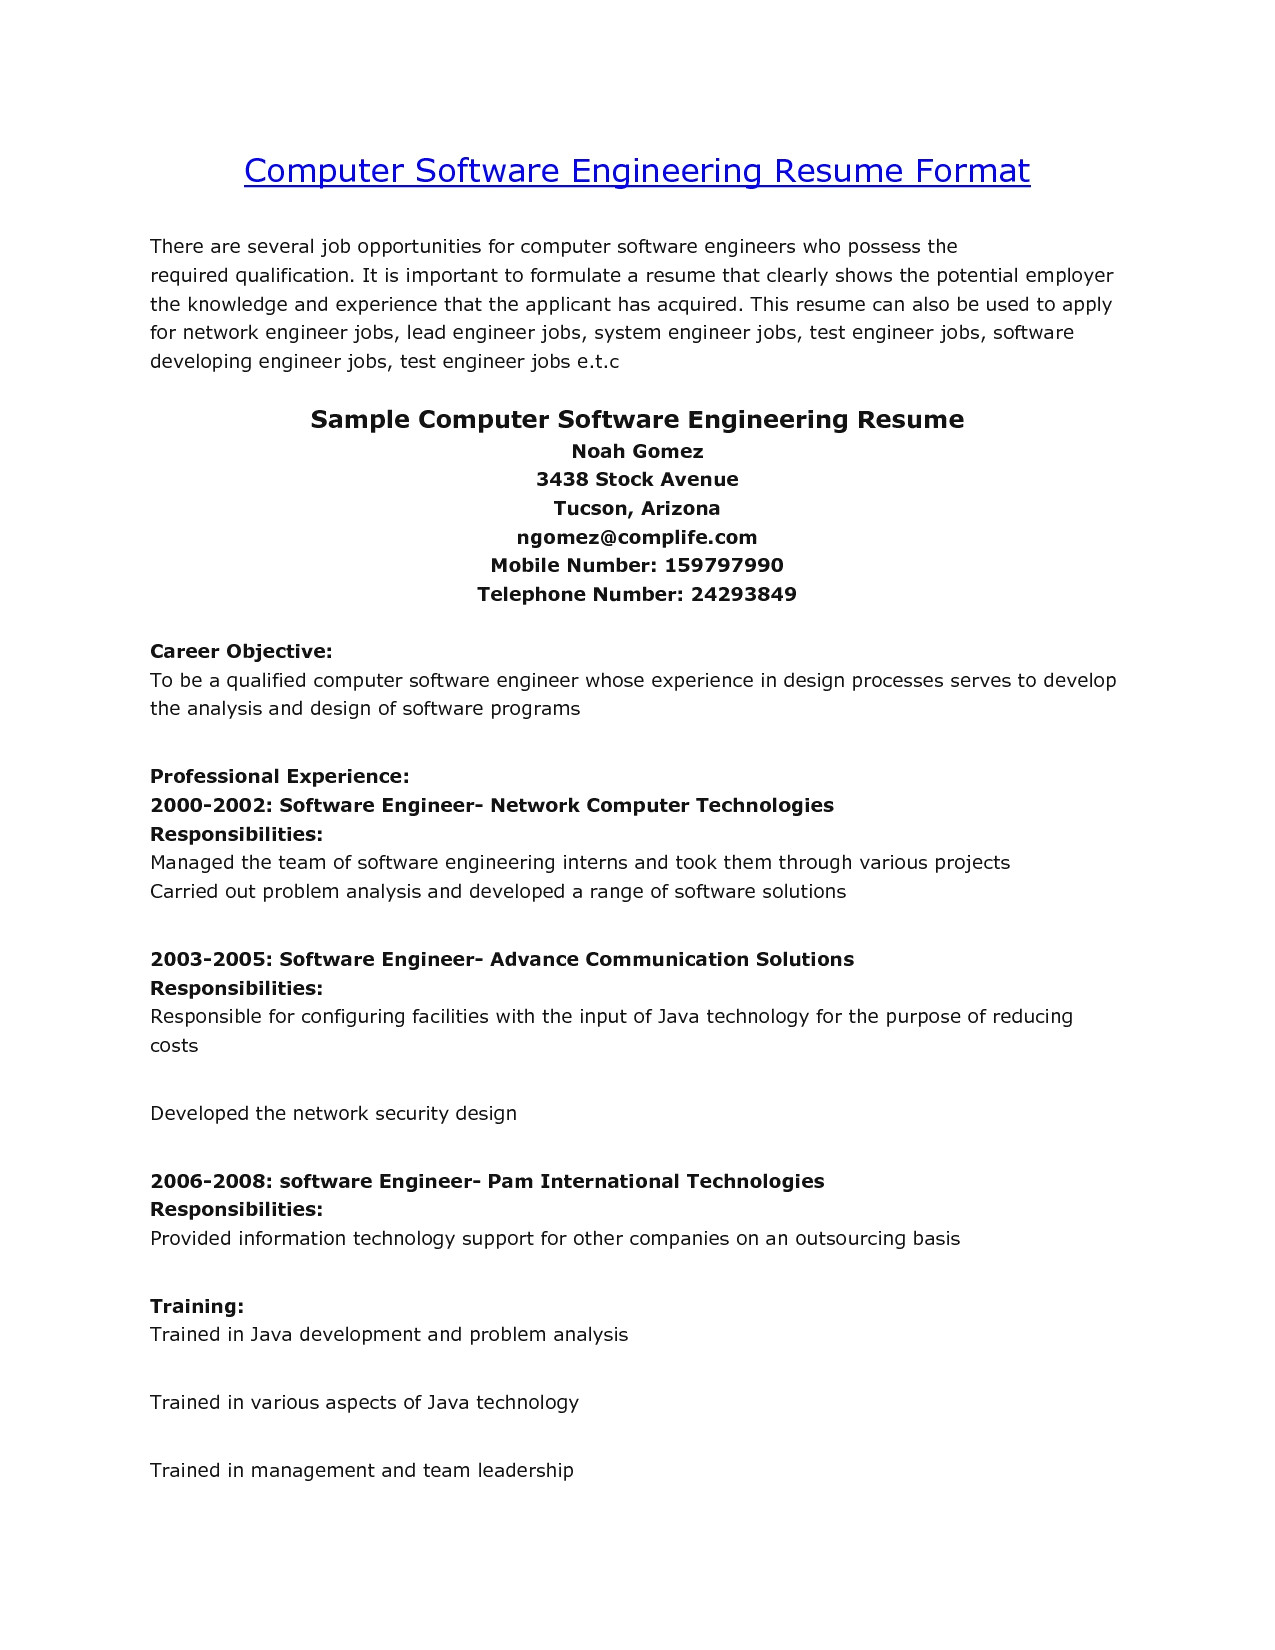 Resume format for Engineers - 44 Concepts Resume Sample Doc